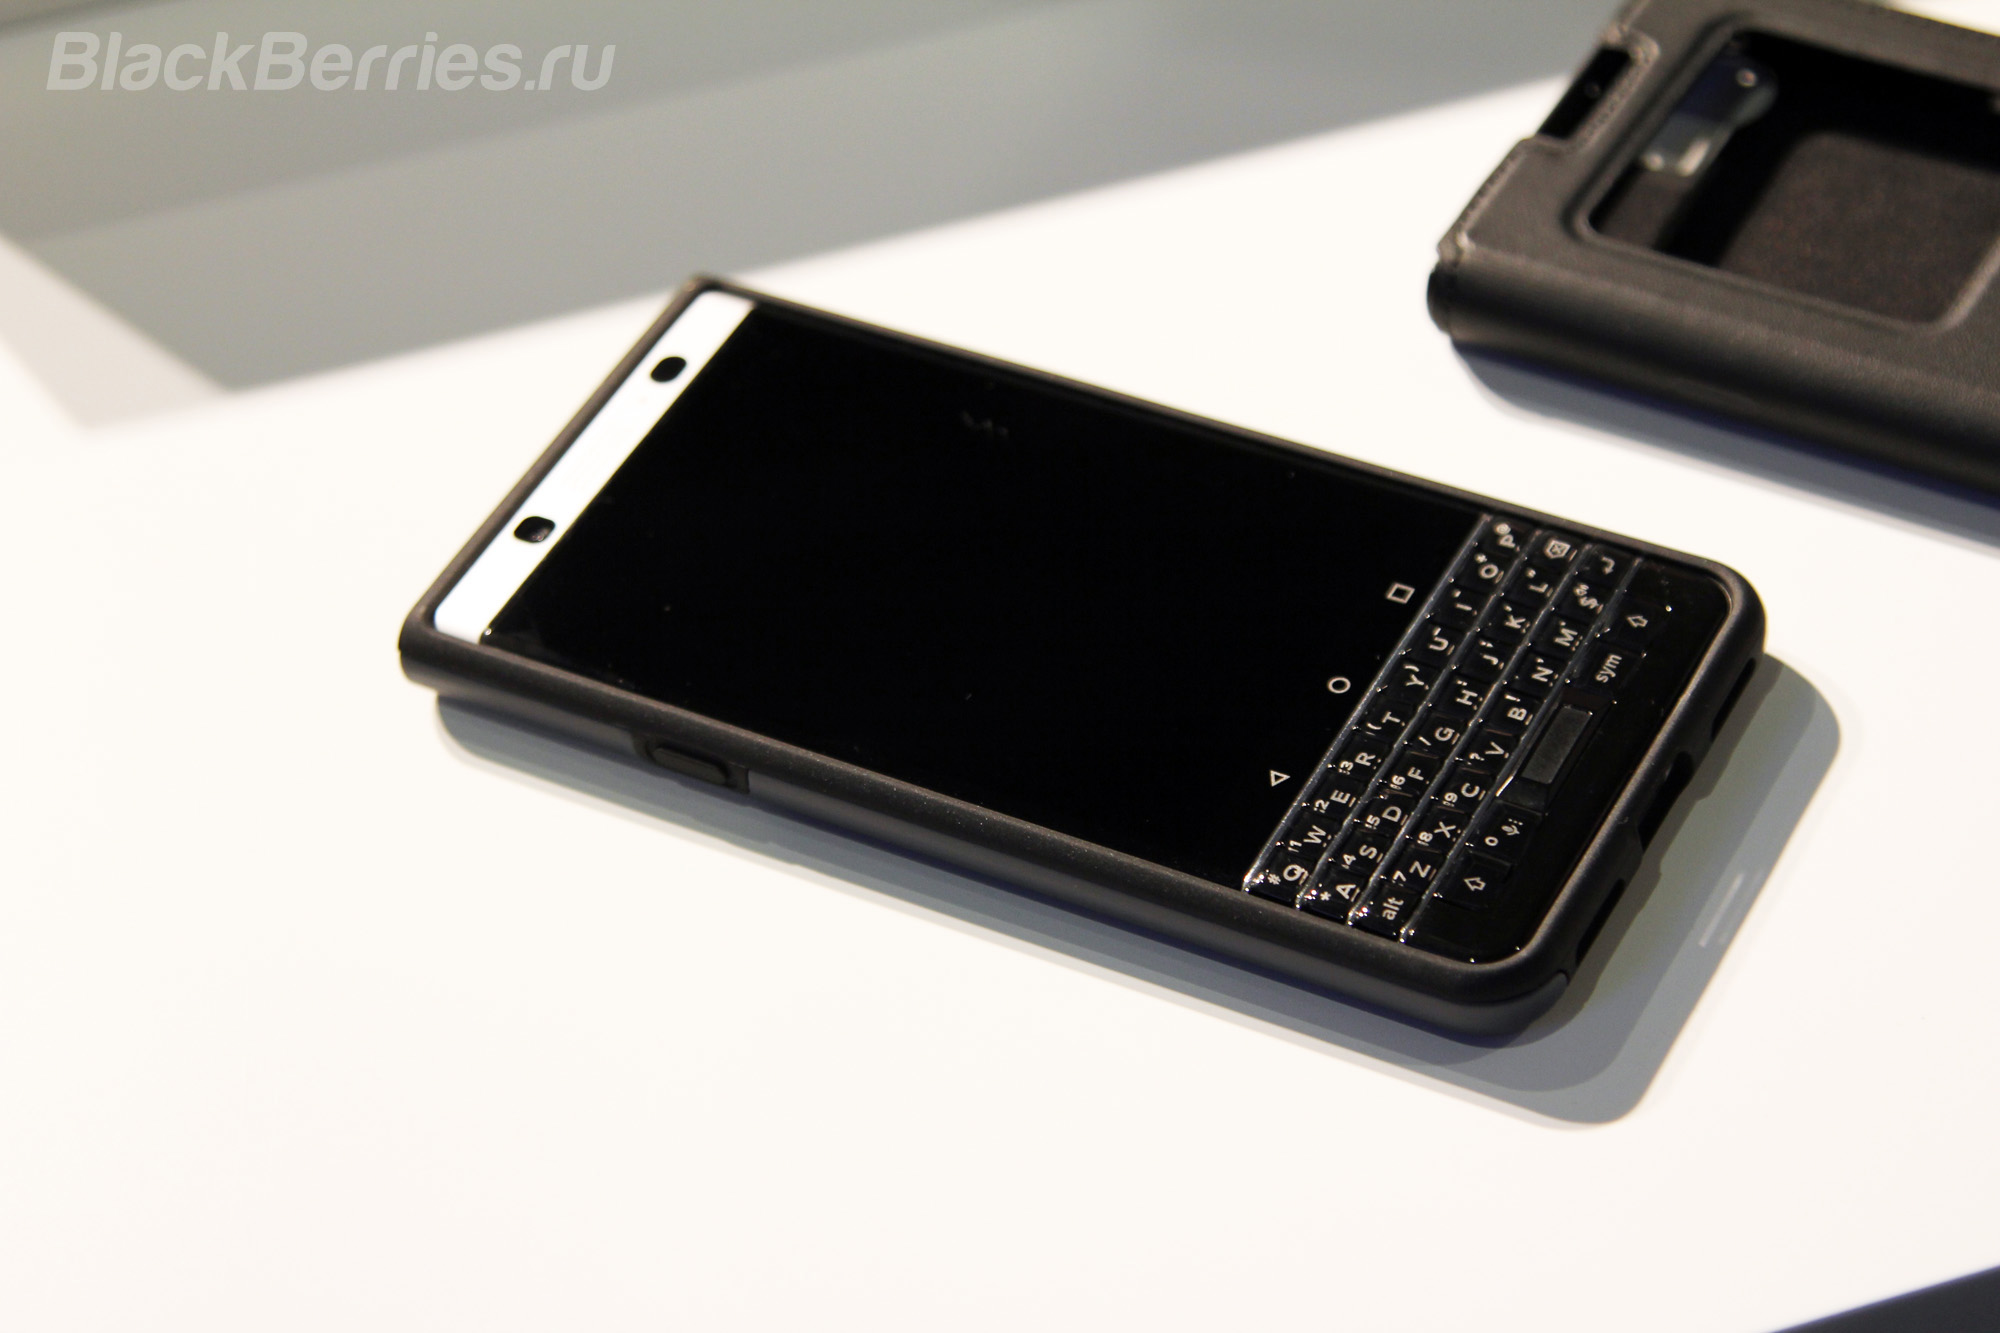 Blackberry keyone pictures official photos -  Blackberry